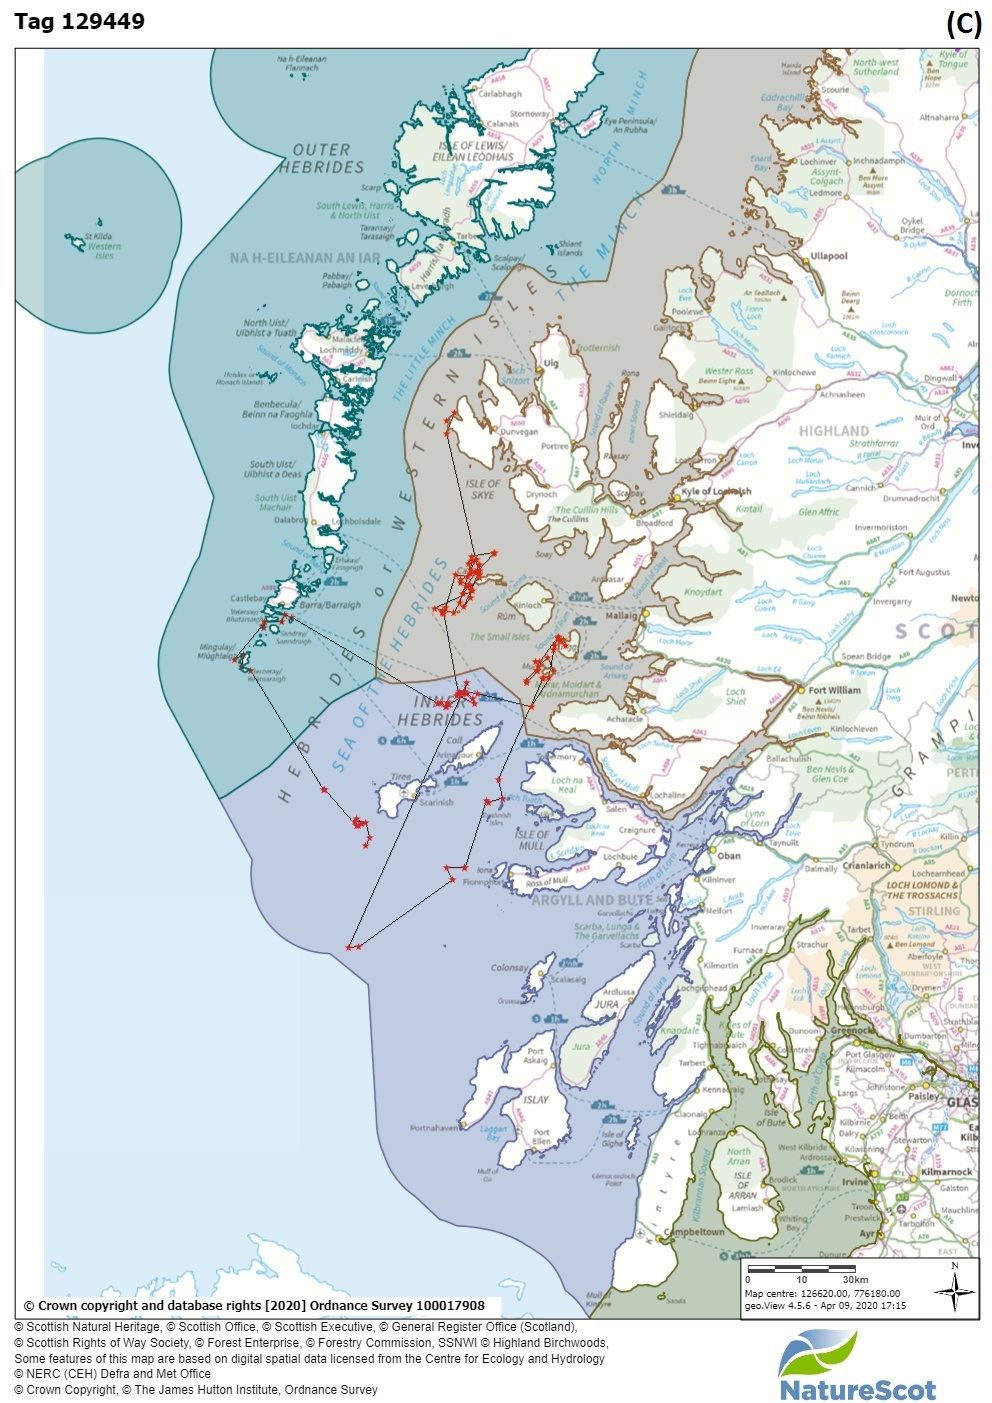 Figure 3: Site fidelity – maps A to D show individual basking shark surface locations from satellite tags deployed during 2012, 2013 or 2014.